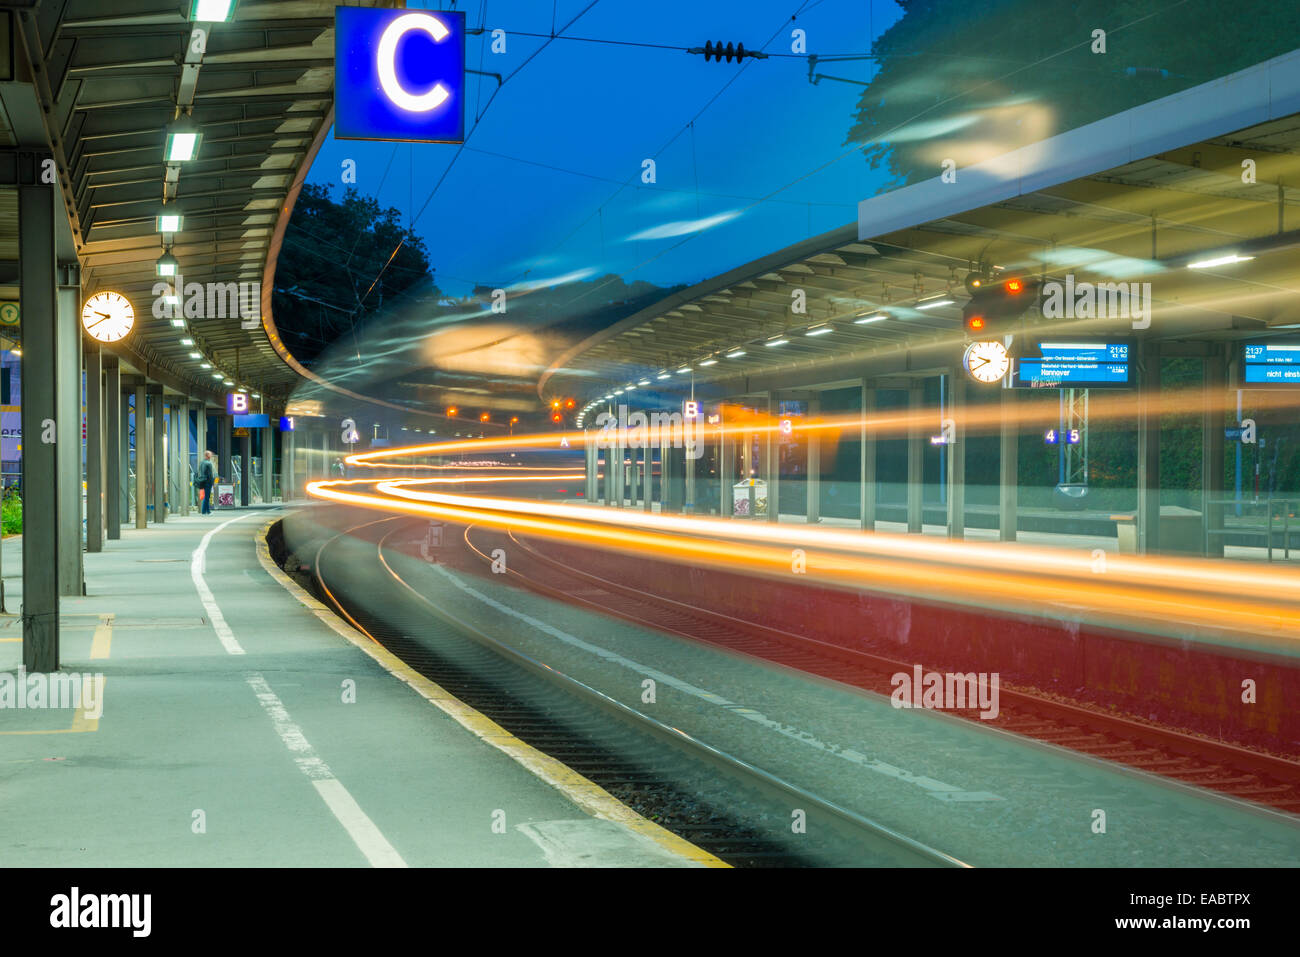 Germany Wuppertal Central Station Light trail of a train - Stock Image